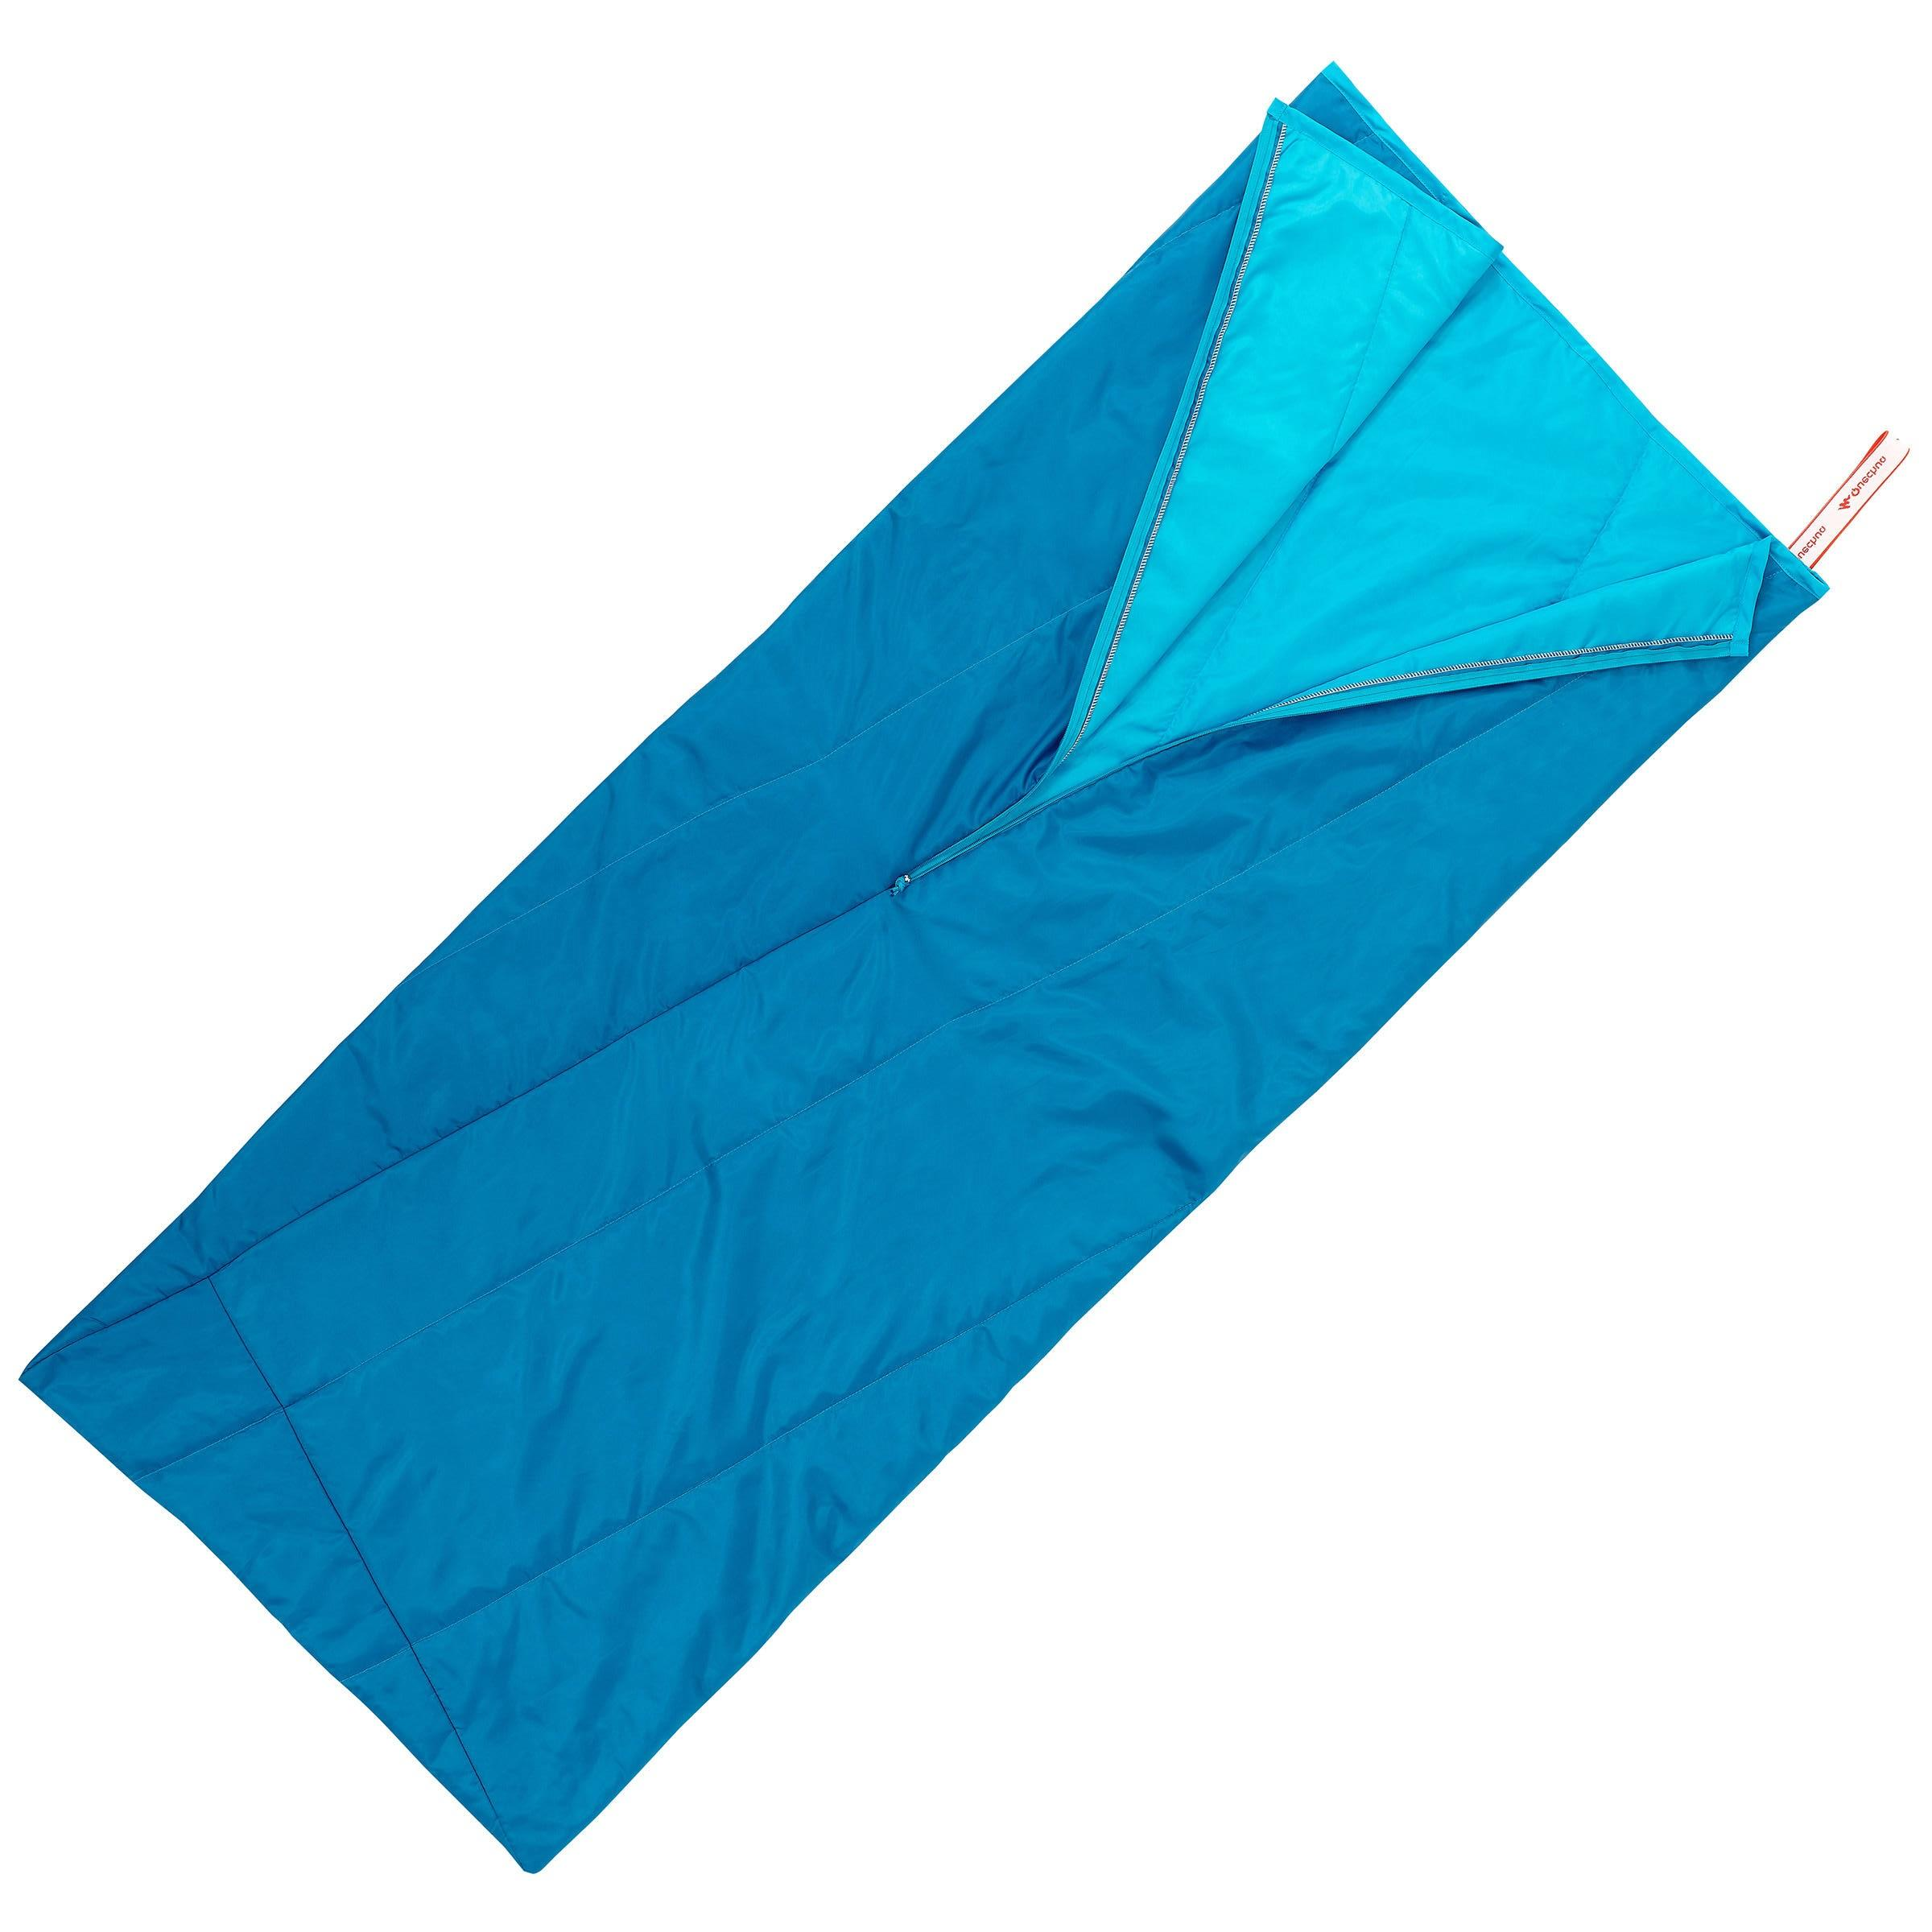 Arpenaz 20° Basic Camping Sleeping Bag